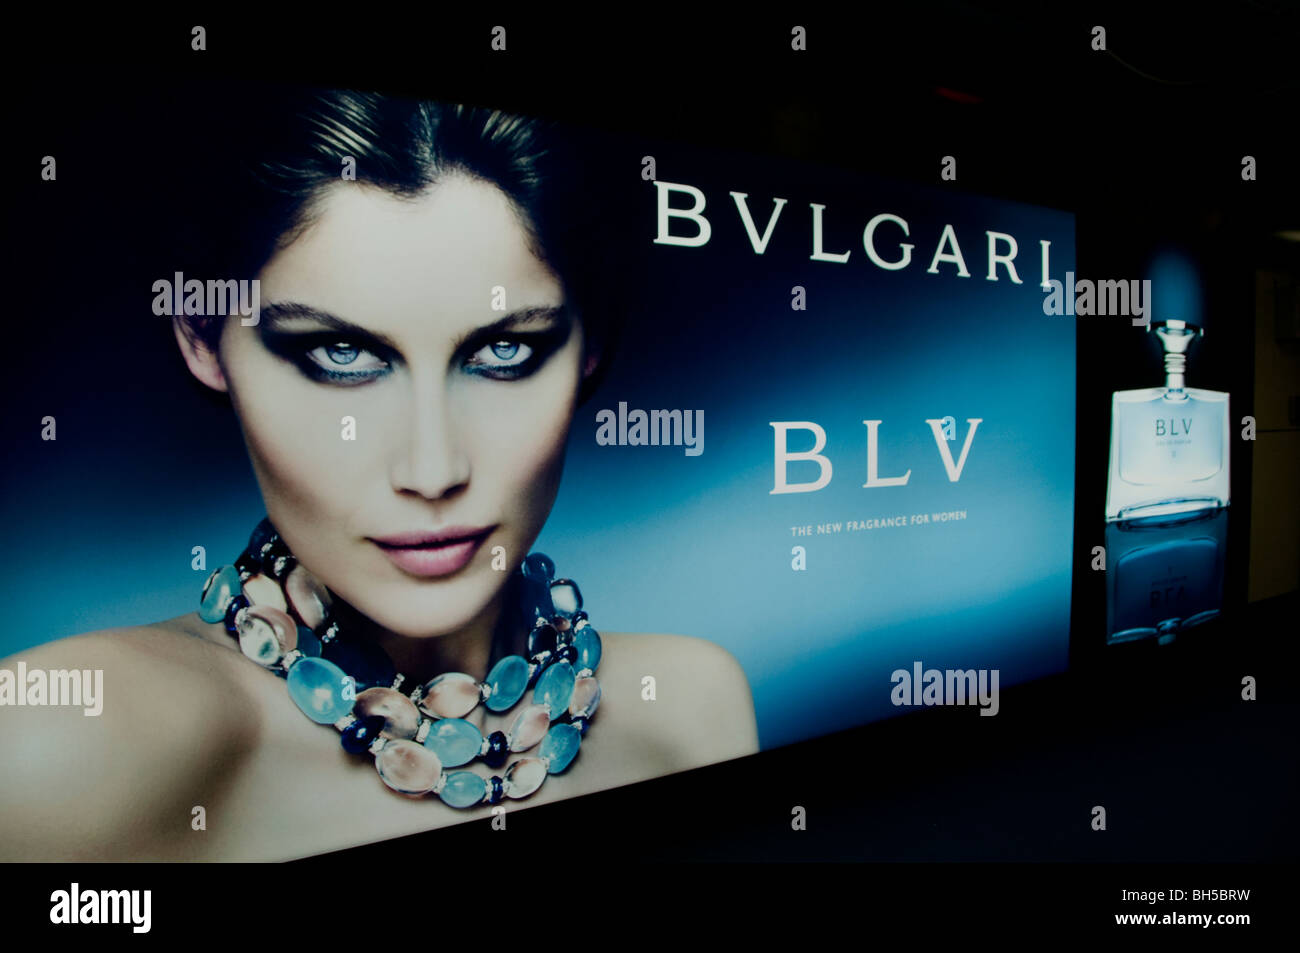 Bvlgari Bulgari perfume  fashion woman young classy eyes - Stock Image